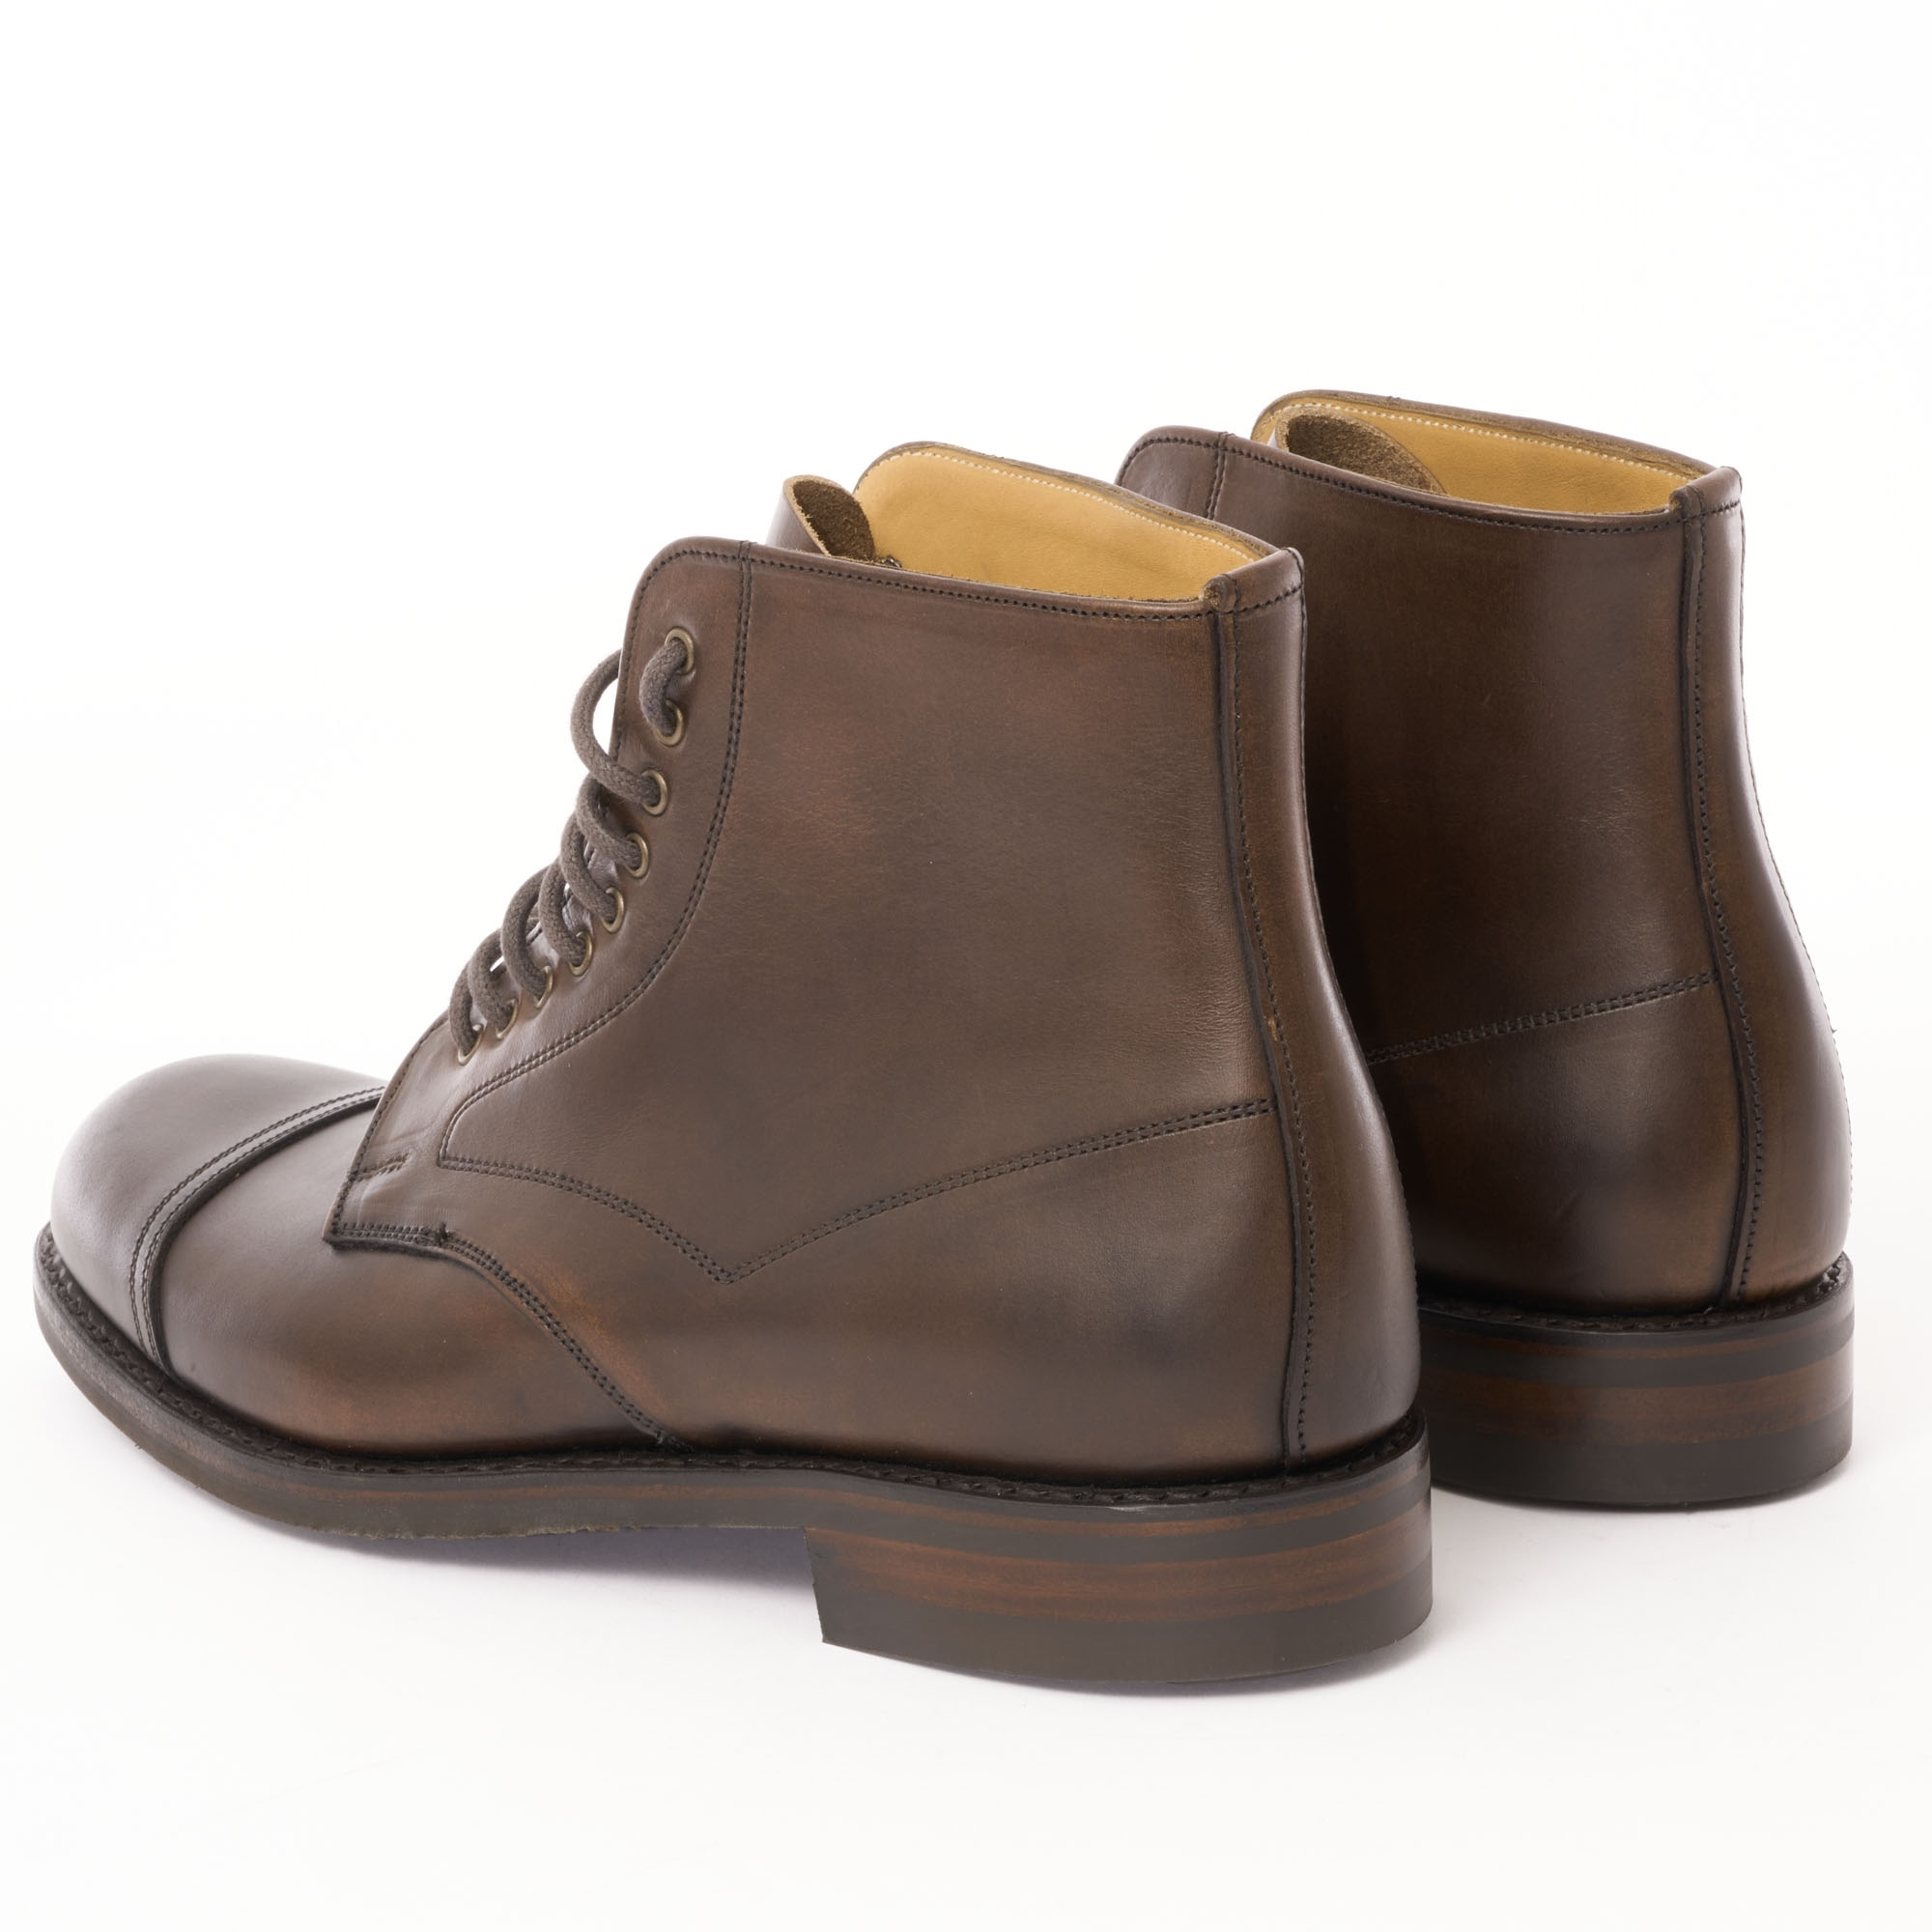 cheaney boots sale off 50% - www